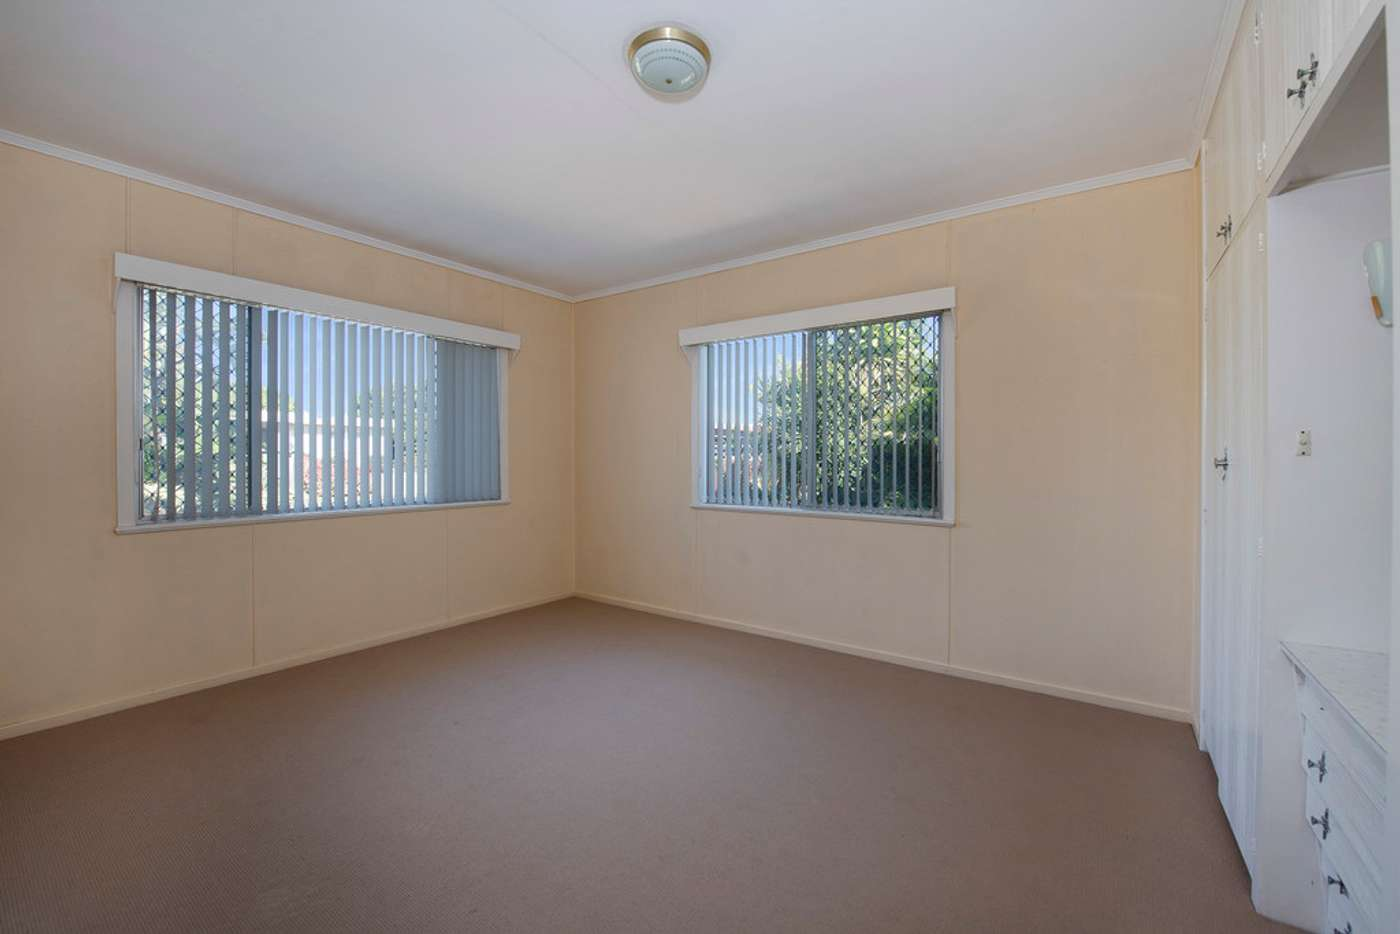 Sixth view of Homely house listing, 215 Bargara Road, Kalkie QLD 4670